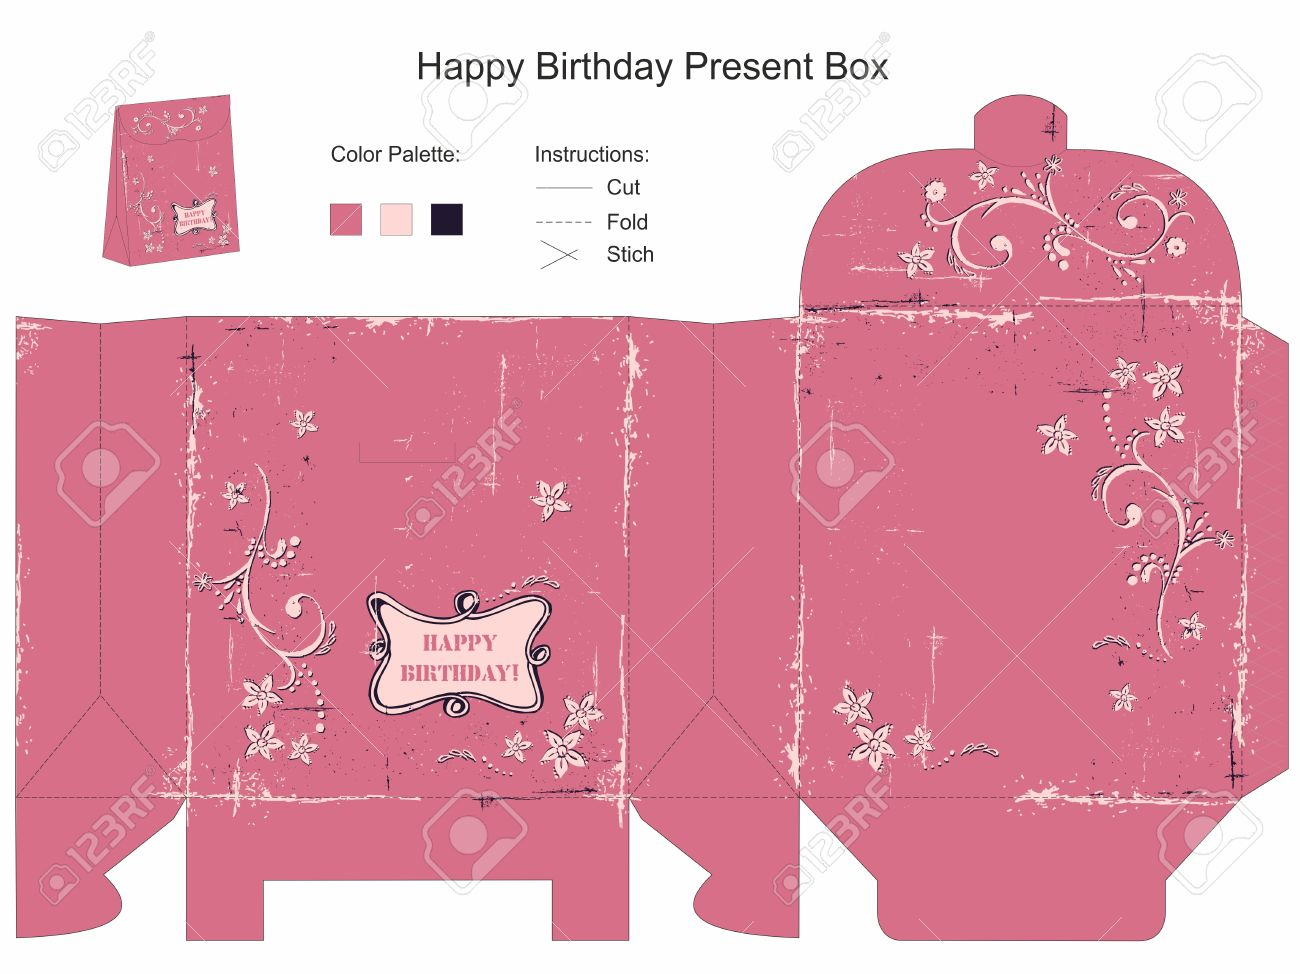 Happy Birthday Gift Box Template Royalty Free Cliparts, Vectors, And ...